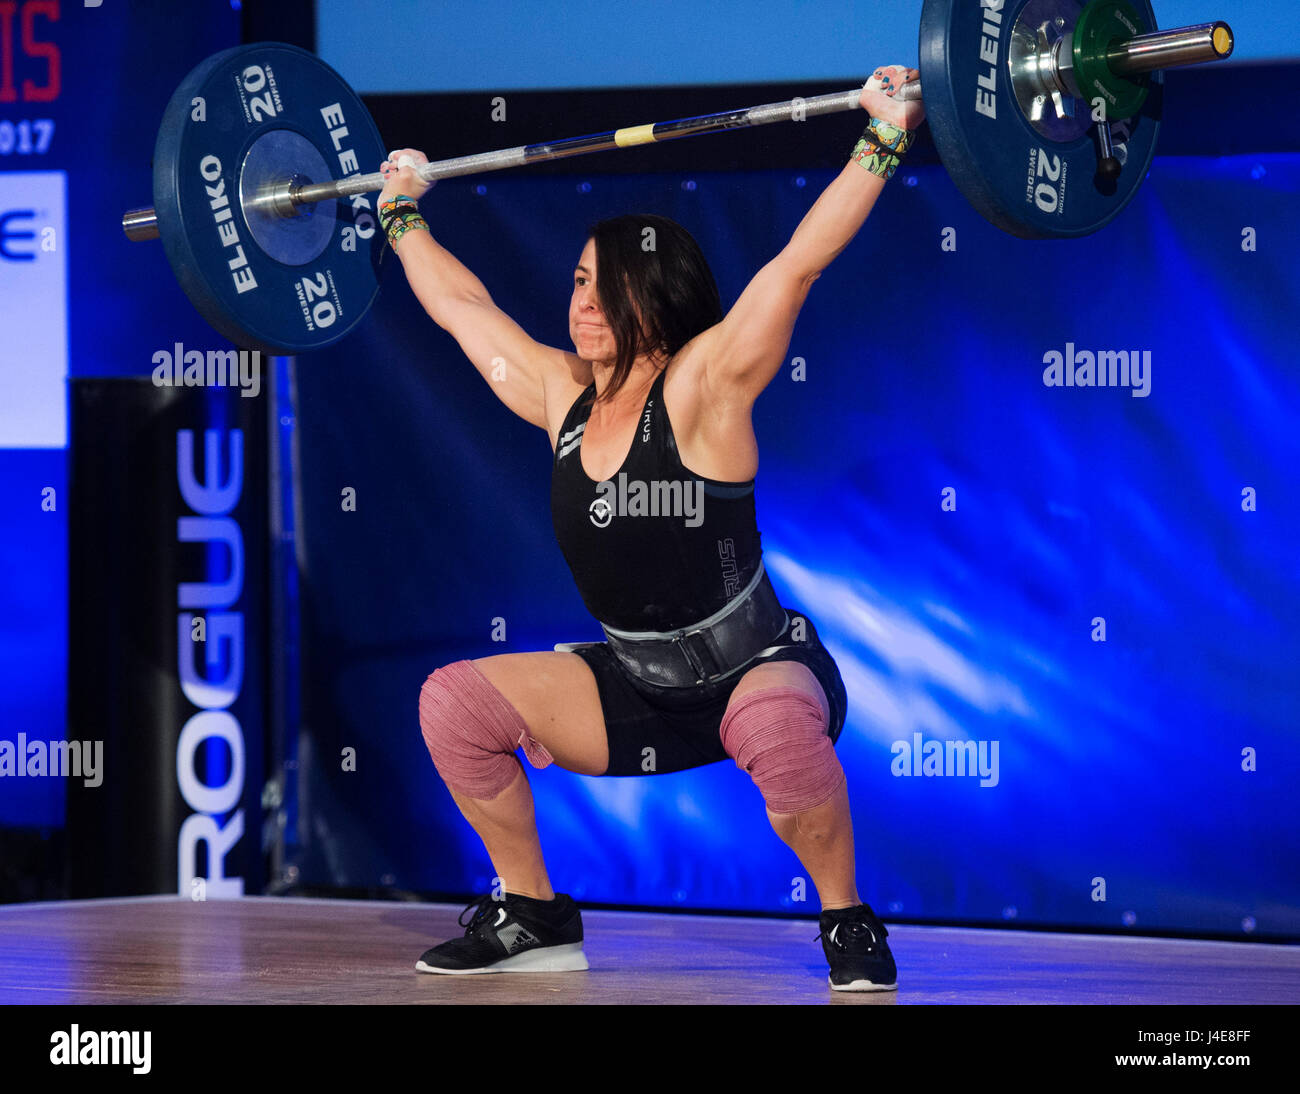 May 12, 2017: Meghan Valentine competes in the Womens 48kg. class at the USA Weightlifting National Championships - Stock Image